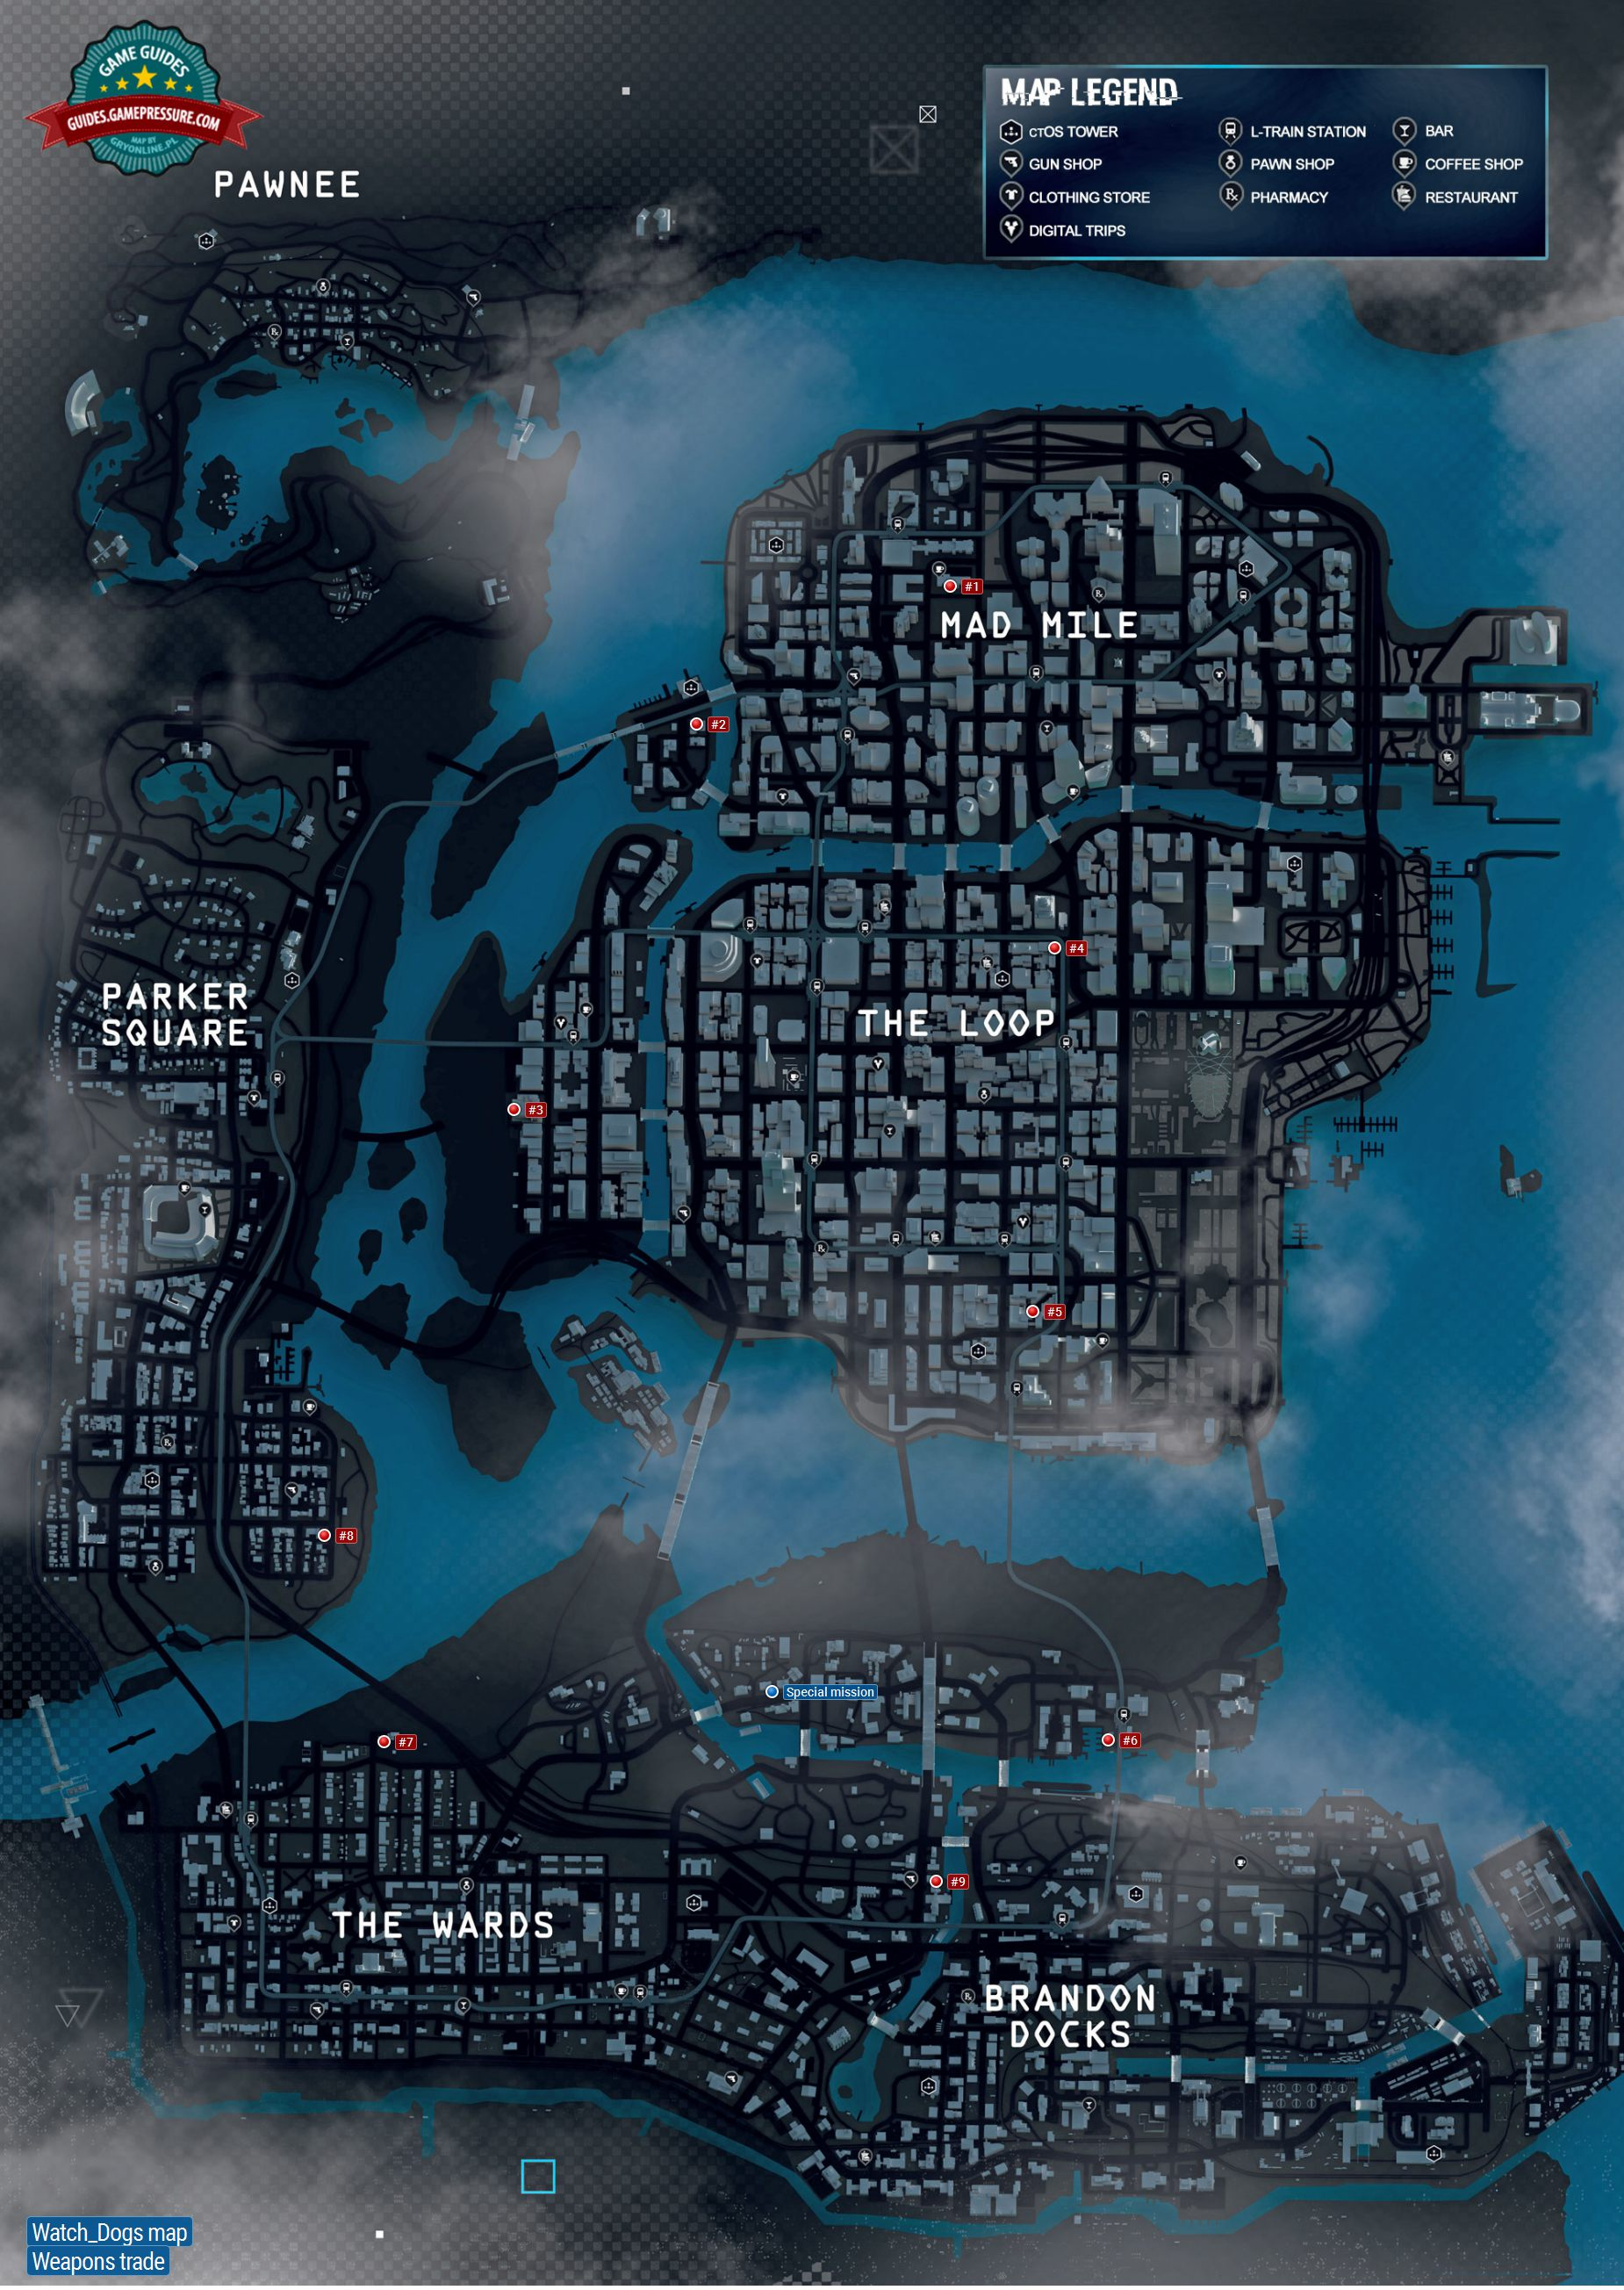 Weapons Trade Maps Of Smaller Activities Watch Dogs